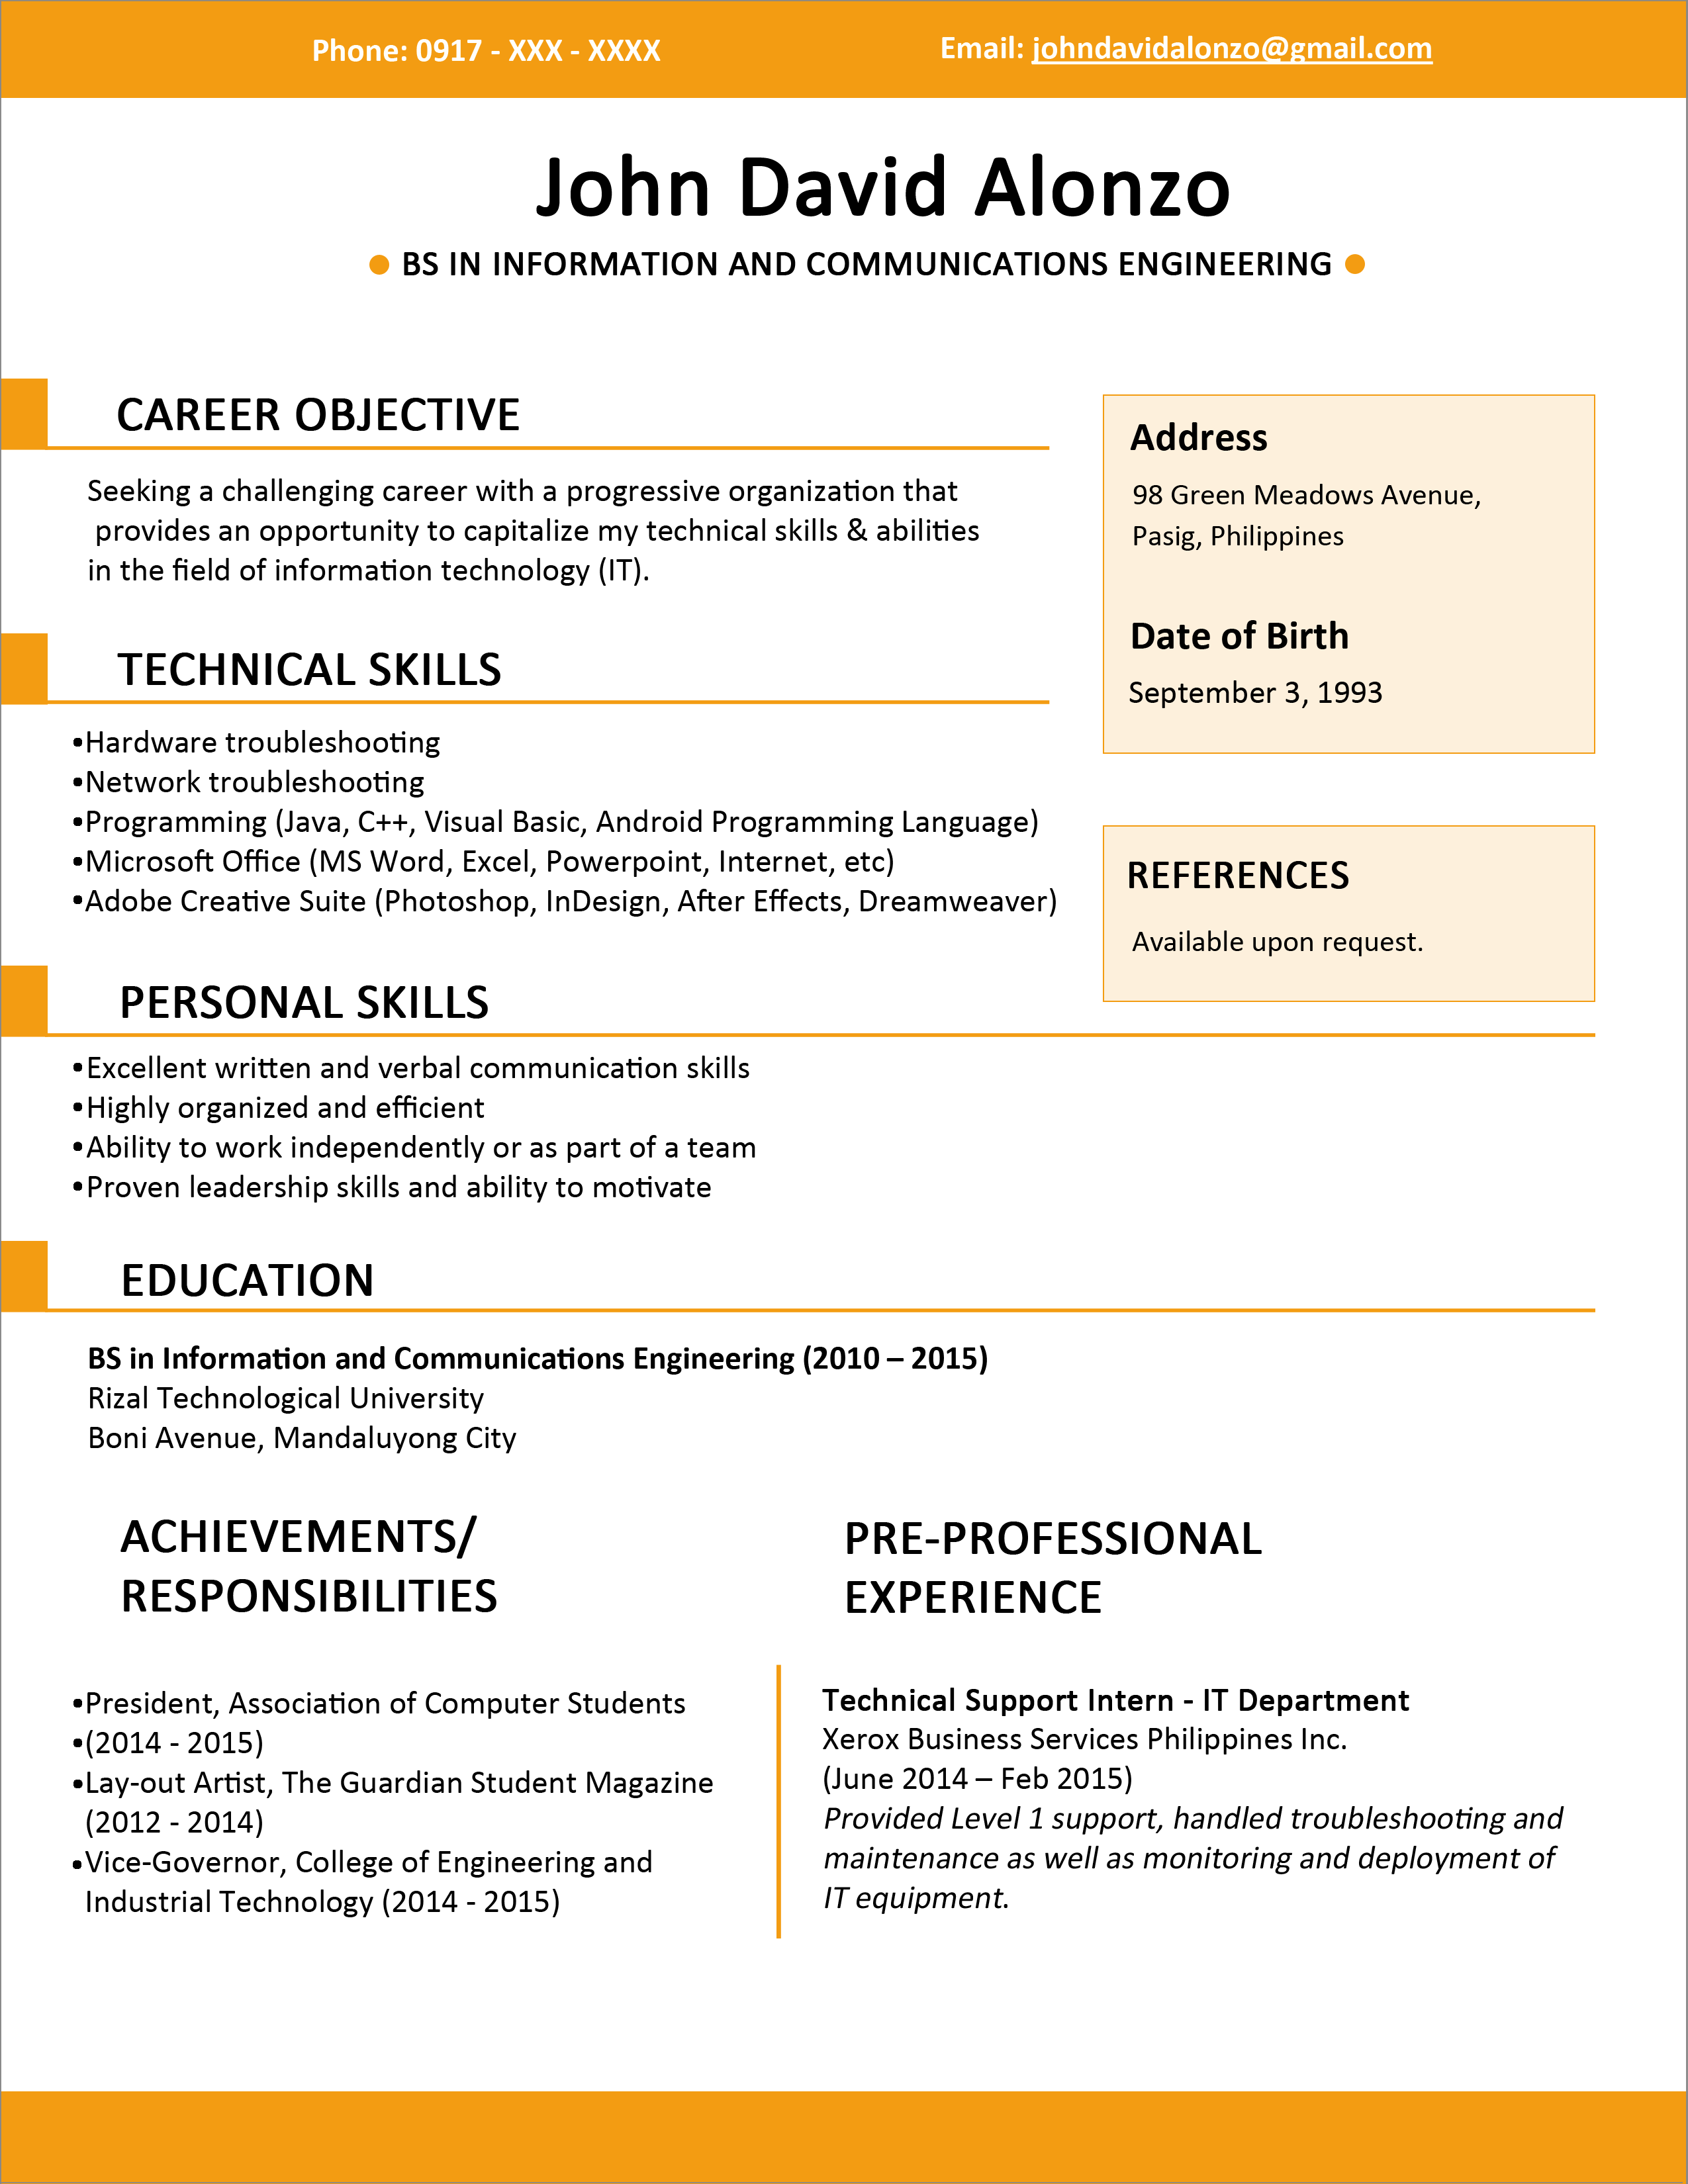 Resume Templates You Can Download Via JobsDB Philippines Prithvi Sample Resume Format